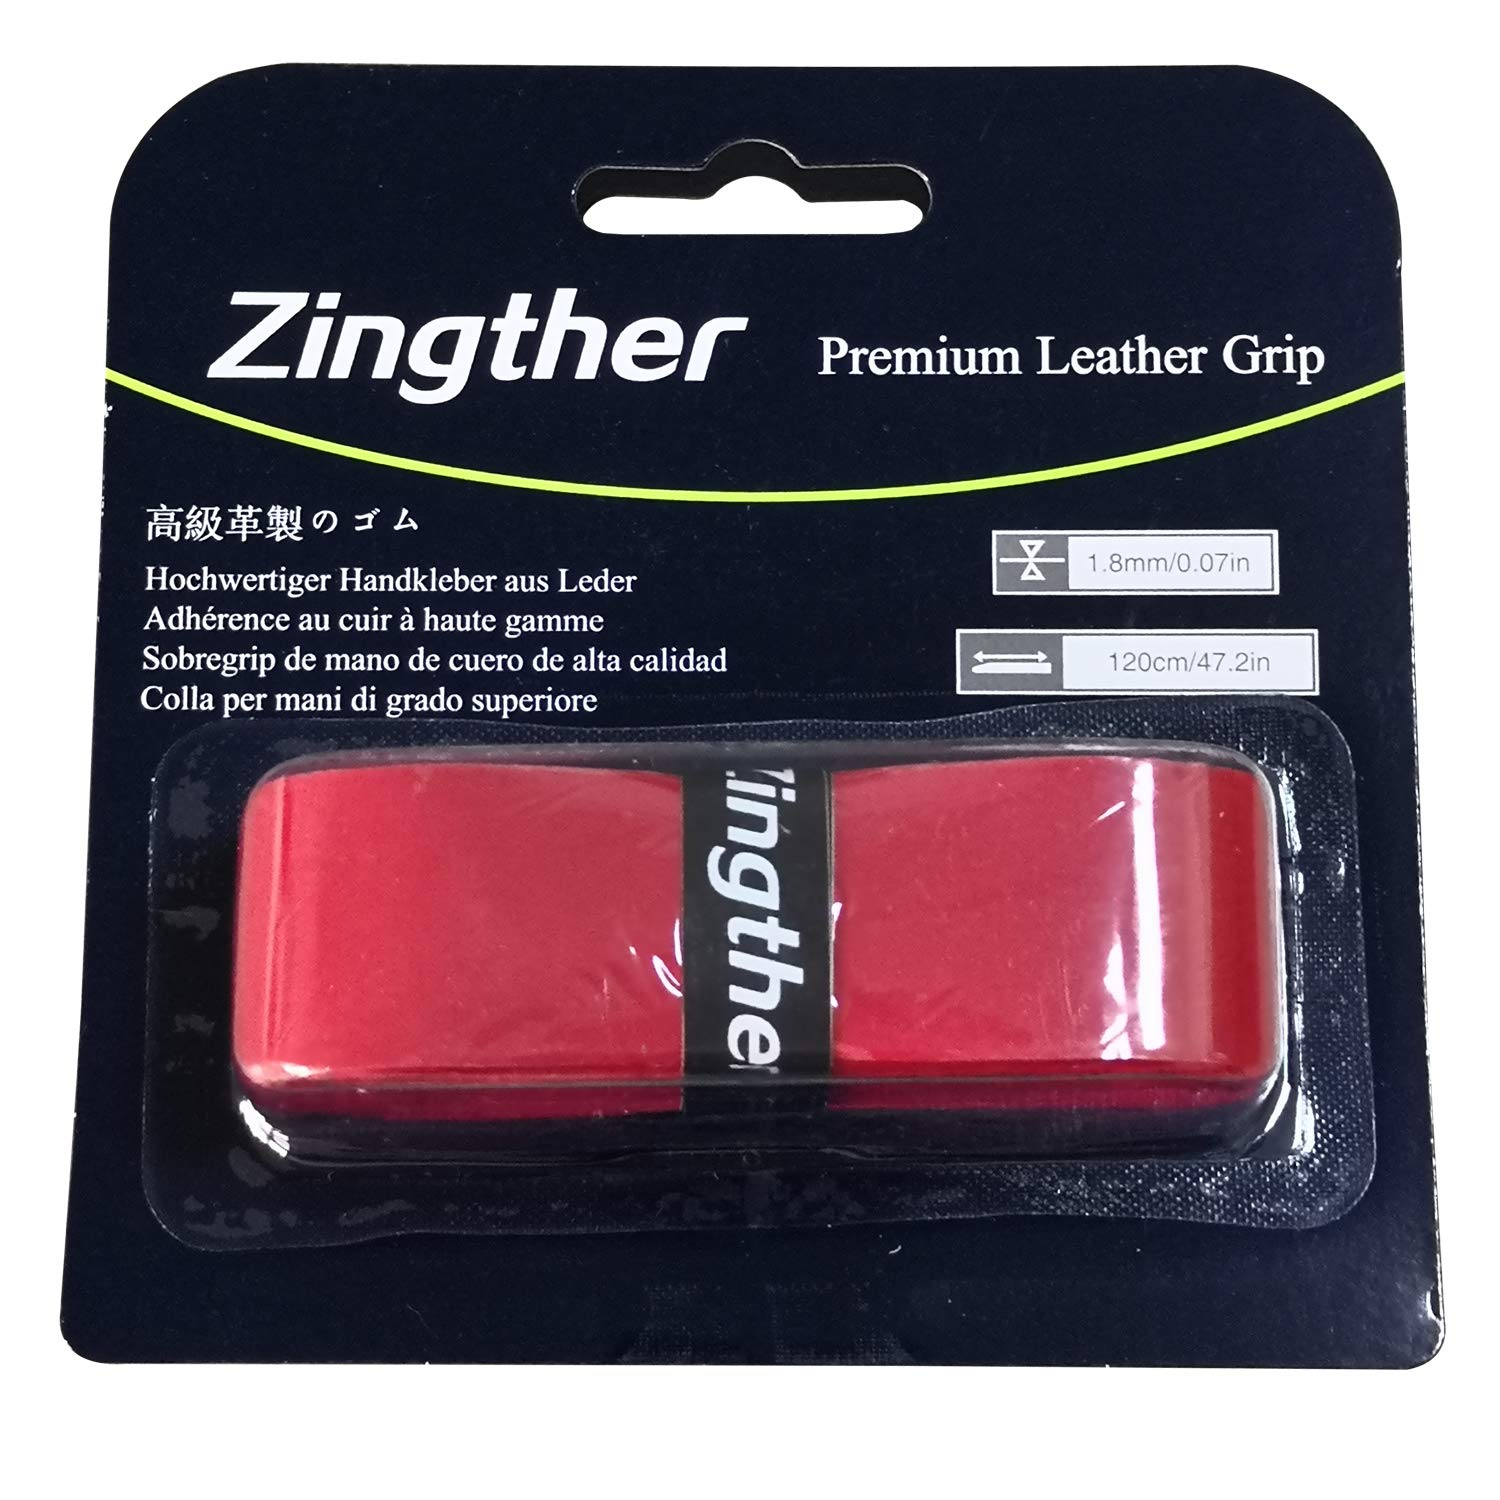 2 Pack of Zingther Premium Leather Replacement Grip Tape 1.8mm Thick Baseball Bat Grip Wrap Tennis Handle Grip with Sticky Adhesive Backing Soft Tacky Comfortable Black or Red Pack of 2 Grips